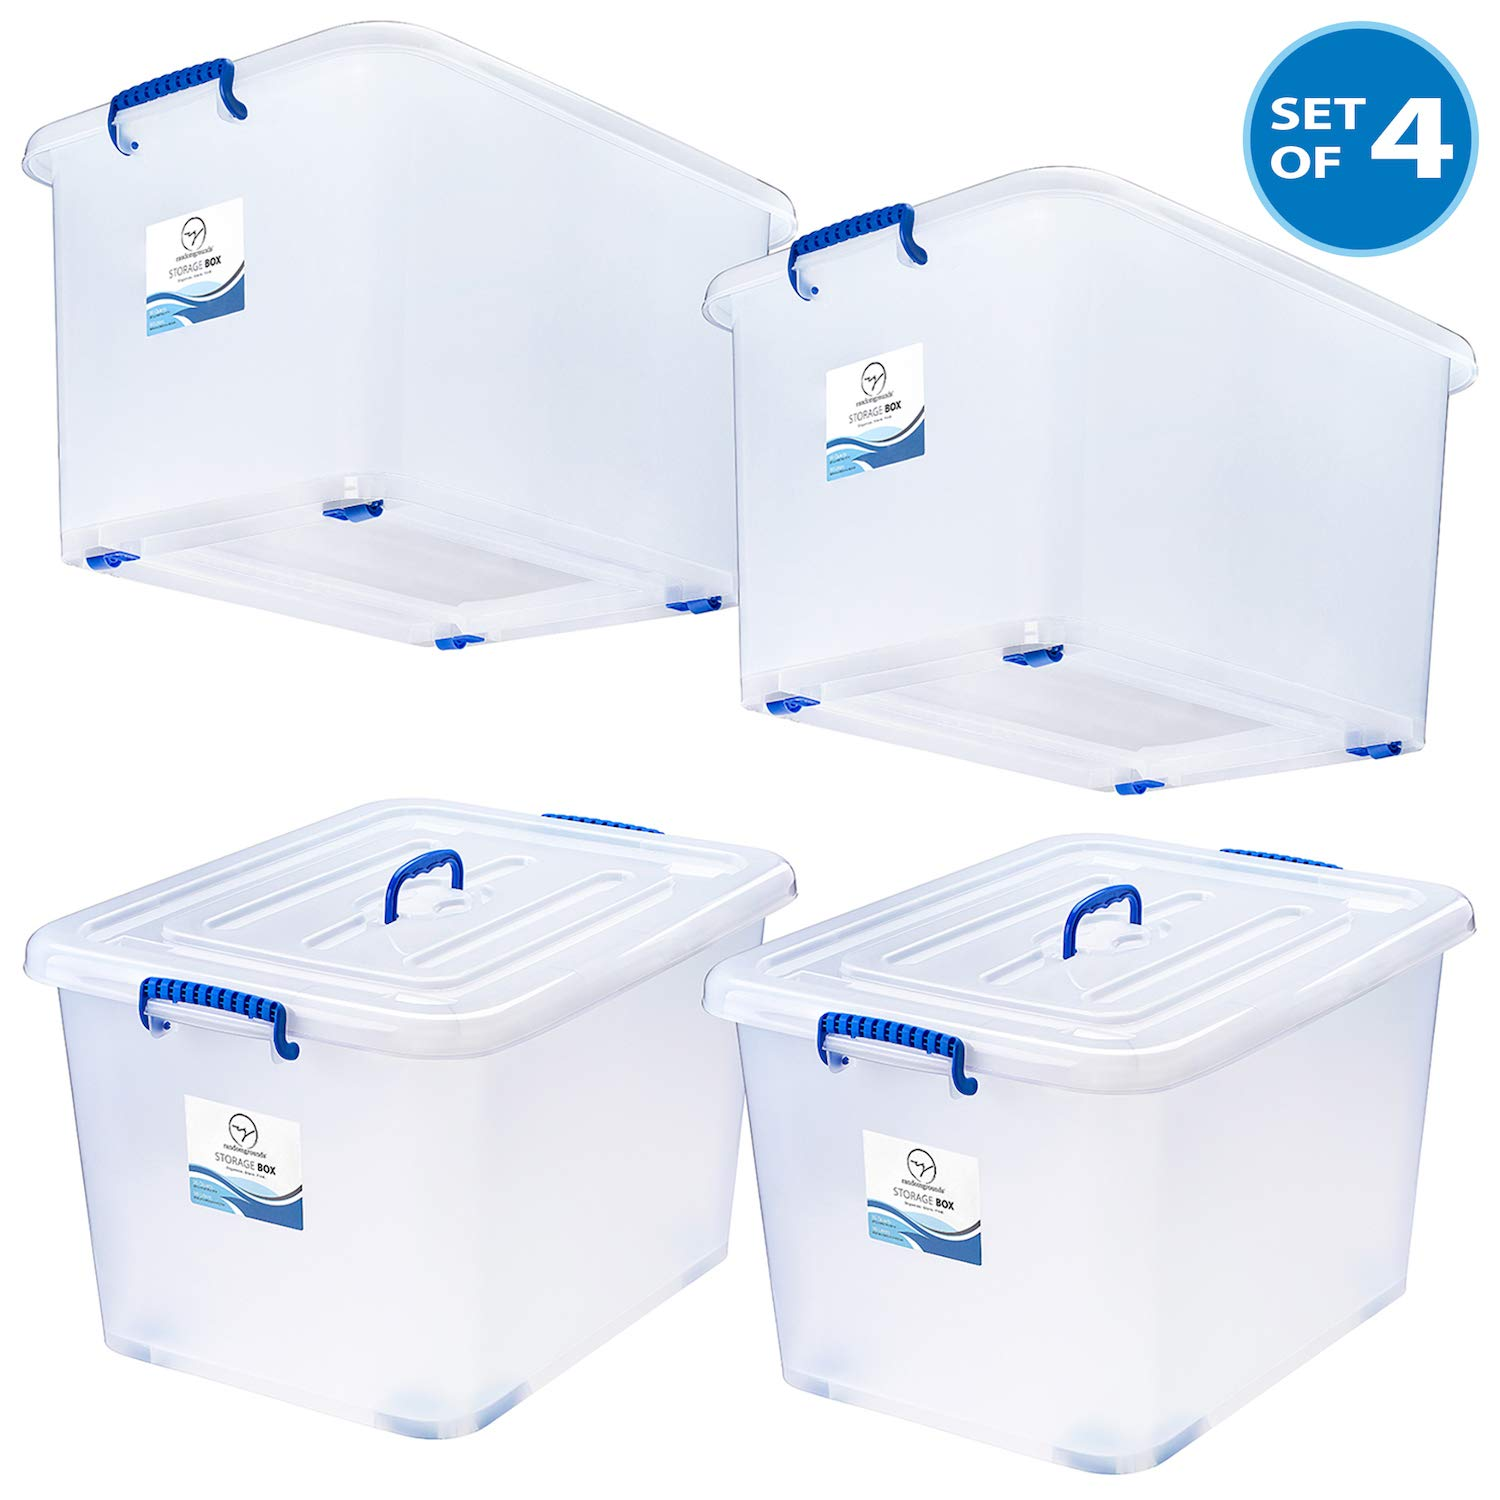 Large Strong Storage Box - 95 Qt White Semi-Transparent Plastic Storage Bins with Lids and Wheels - Stackable Space-Saver Containers - Tough and Secure Organizers for Home, Office, School - Set of 4 by randomgrounds